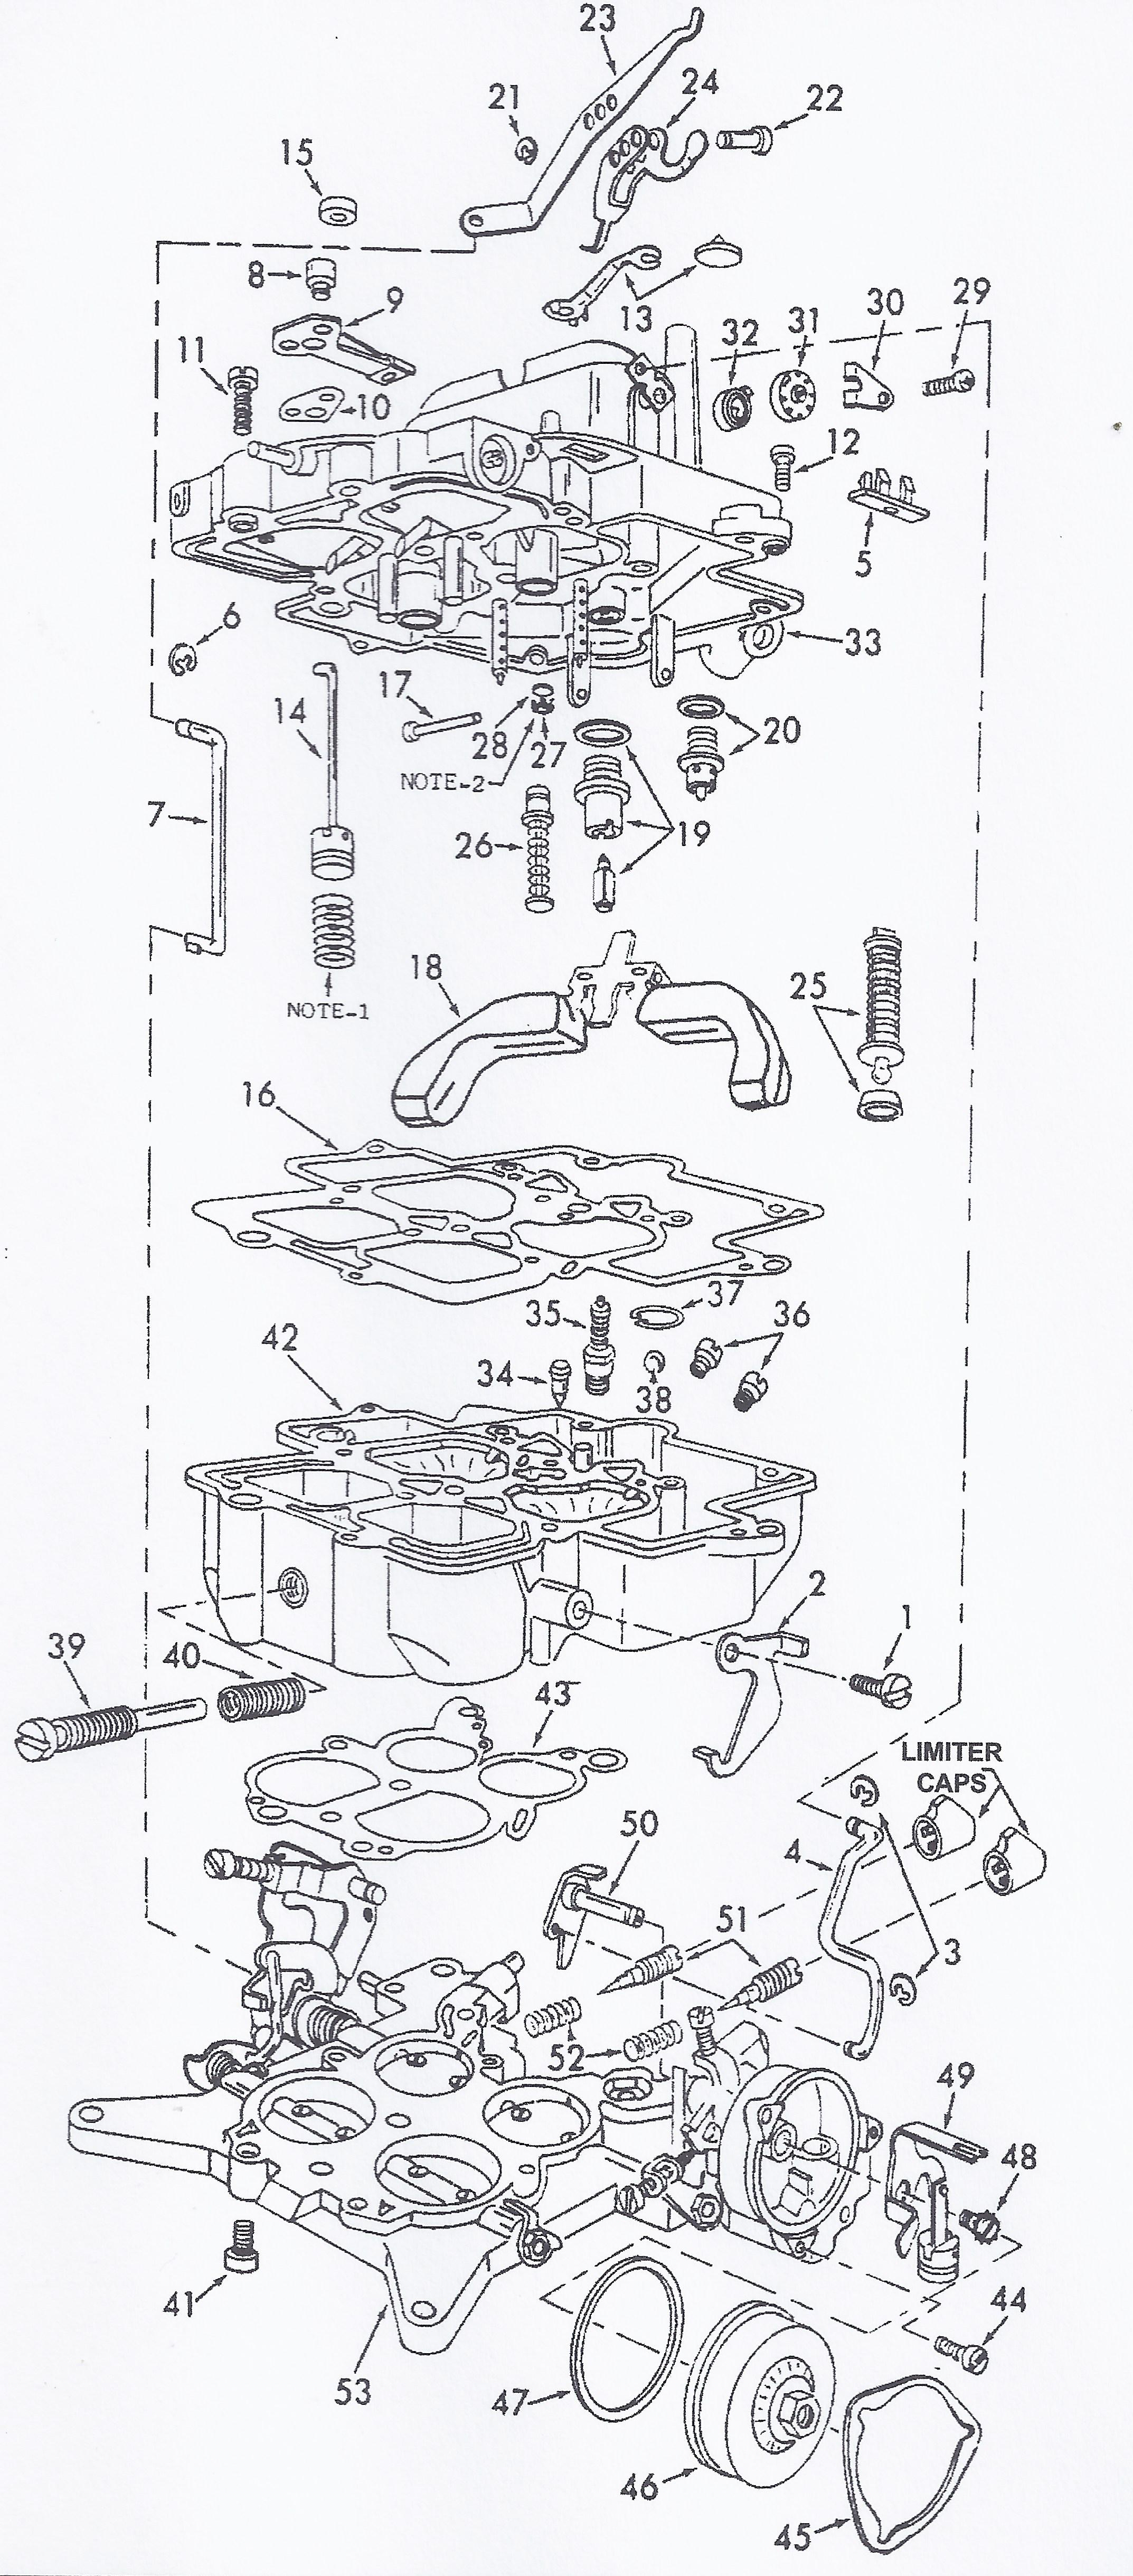 Mitsubishi L200 Part Manual